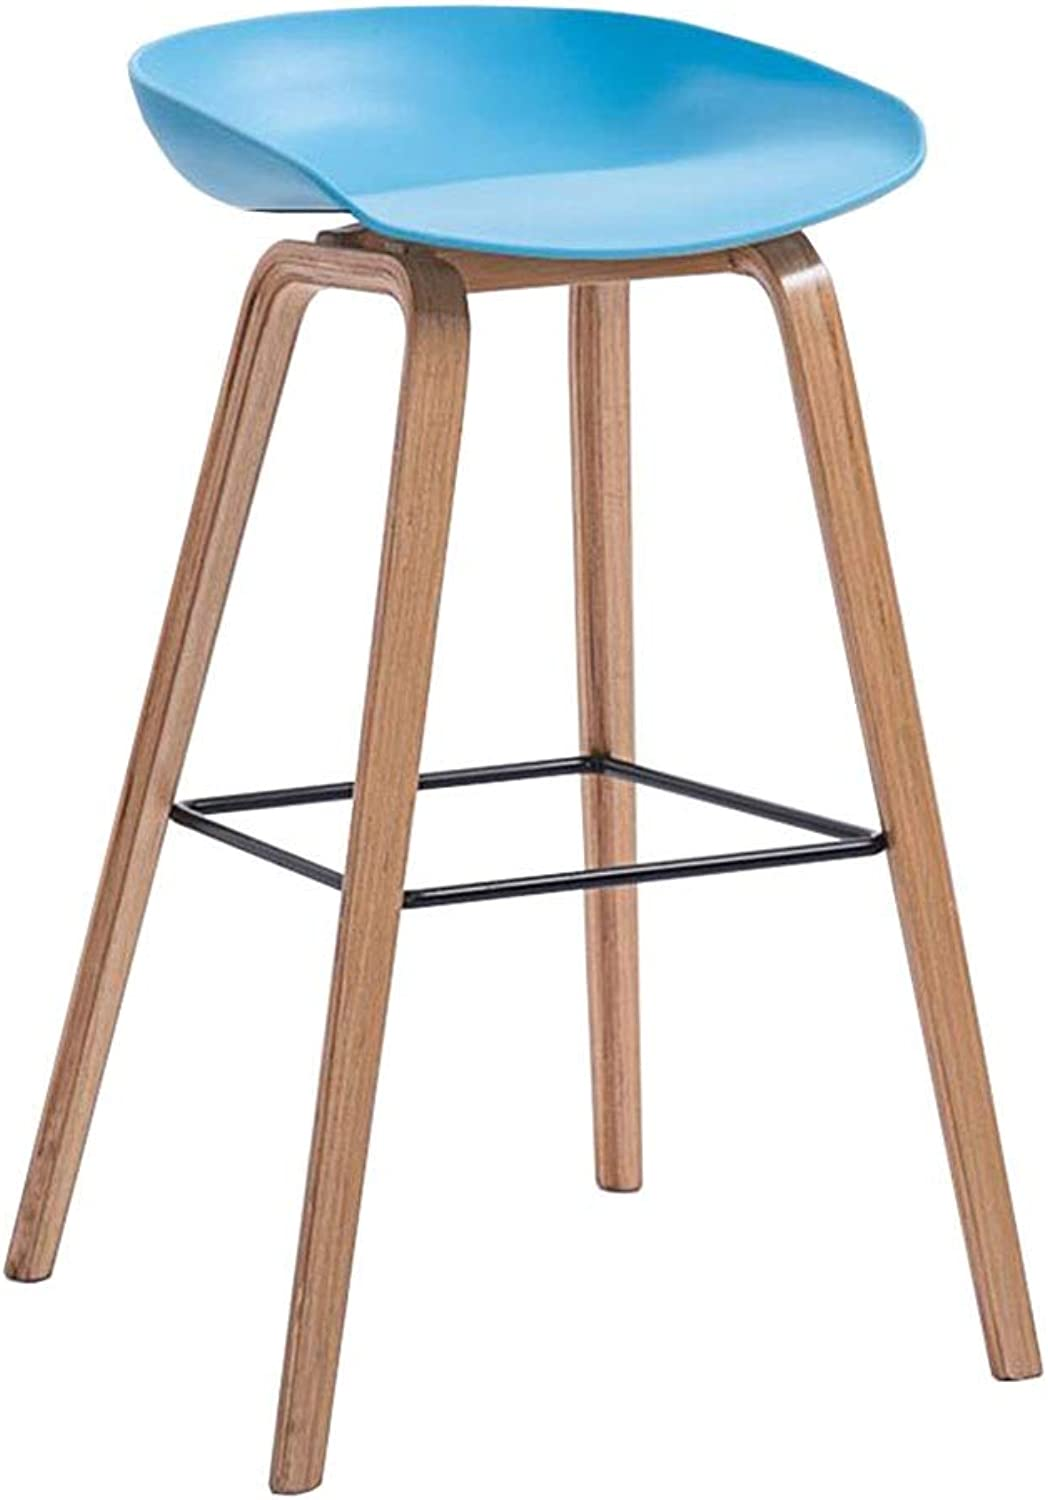 Dall Bar Stool PP Seat Wooden Legs High Chair Kitchen Breakfast Bar Pub Counter Cafe Sitting Height 74cm (color   bluee1)